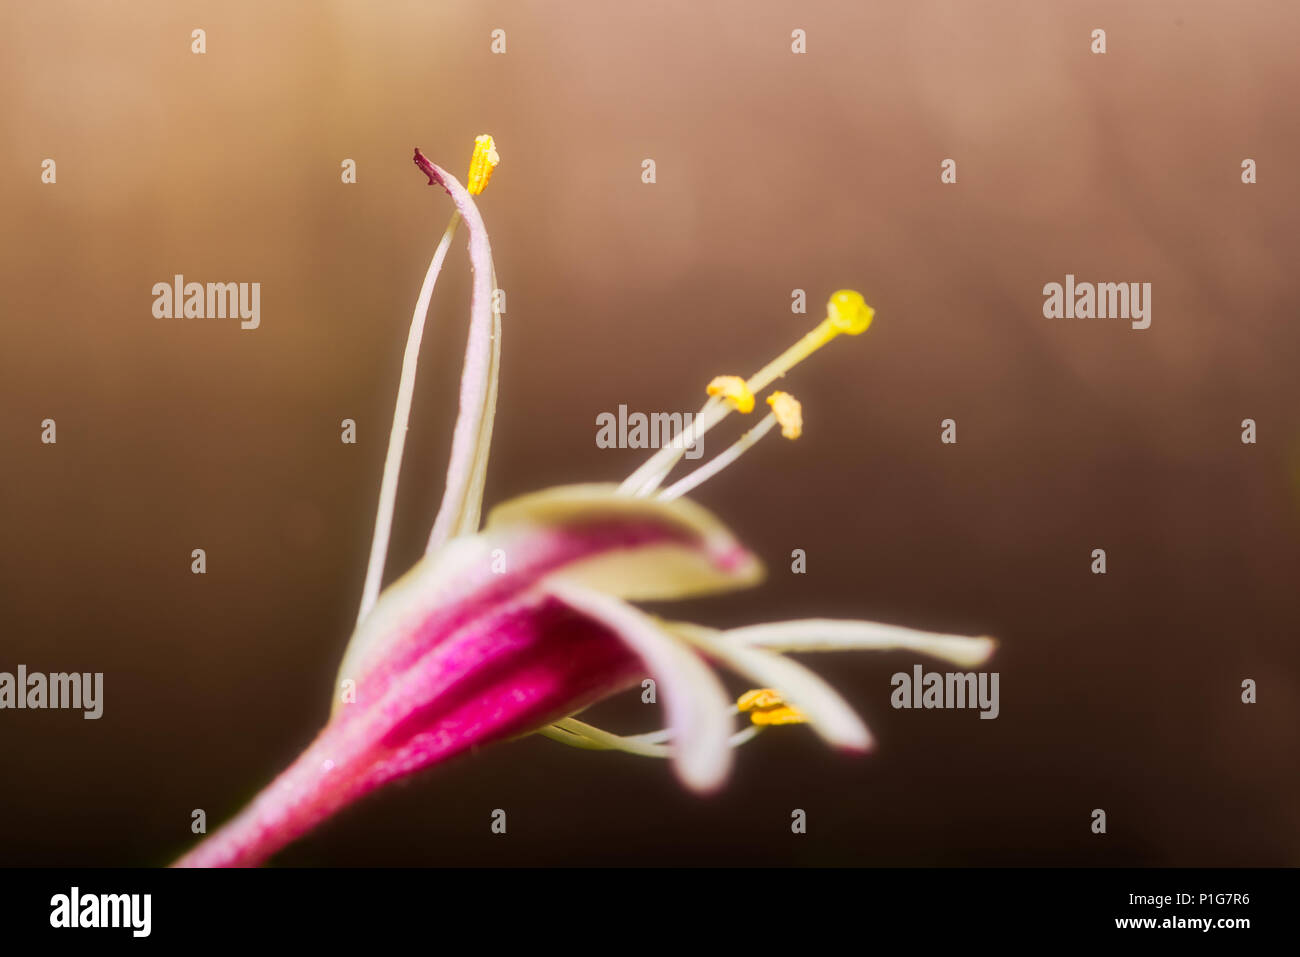 Regal Lily Stock Photos & Regal Lily Stock Images - Alamy